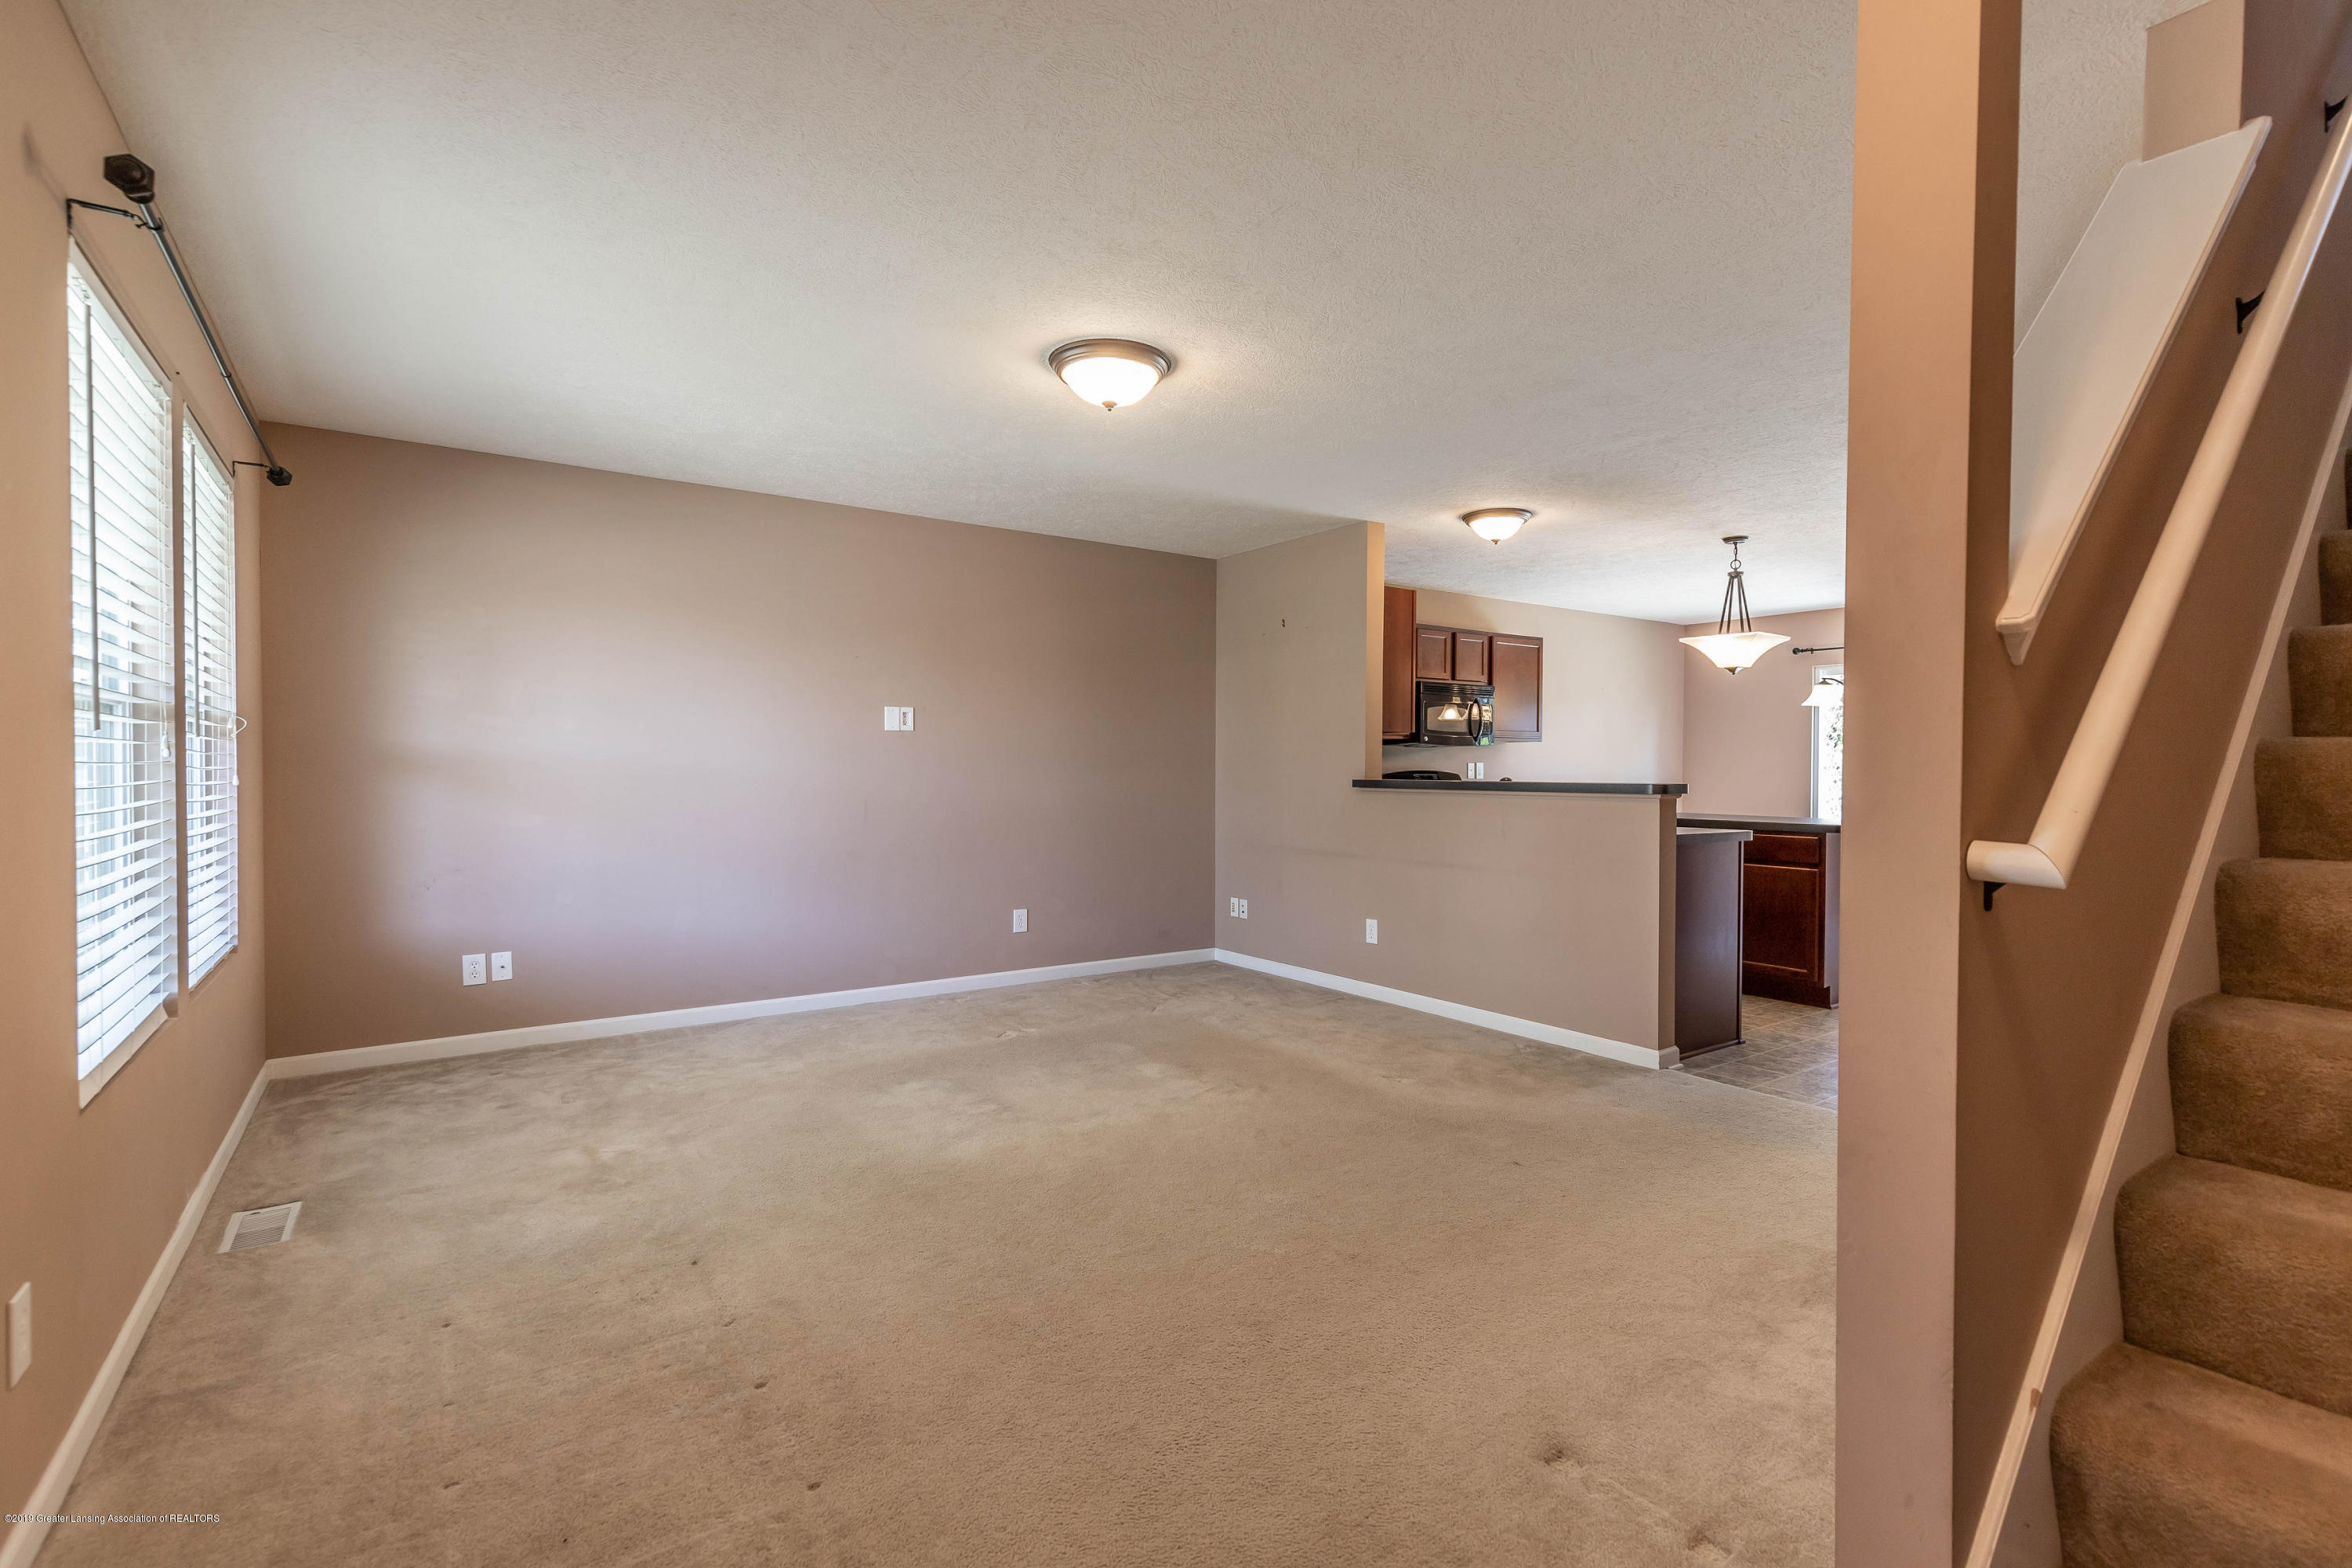 15125 Loxley Ln - loxleyliving(1of1) - 3